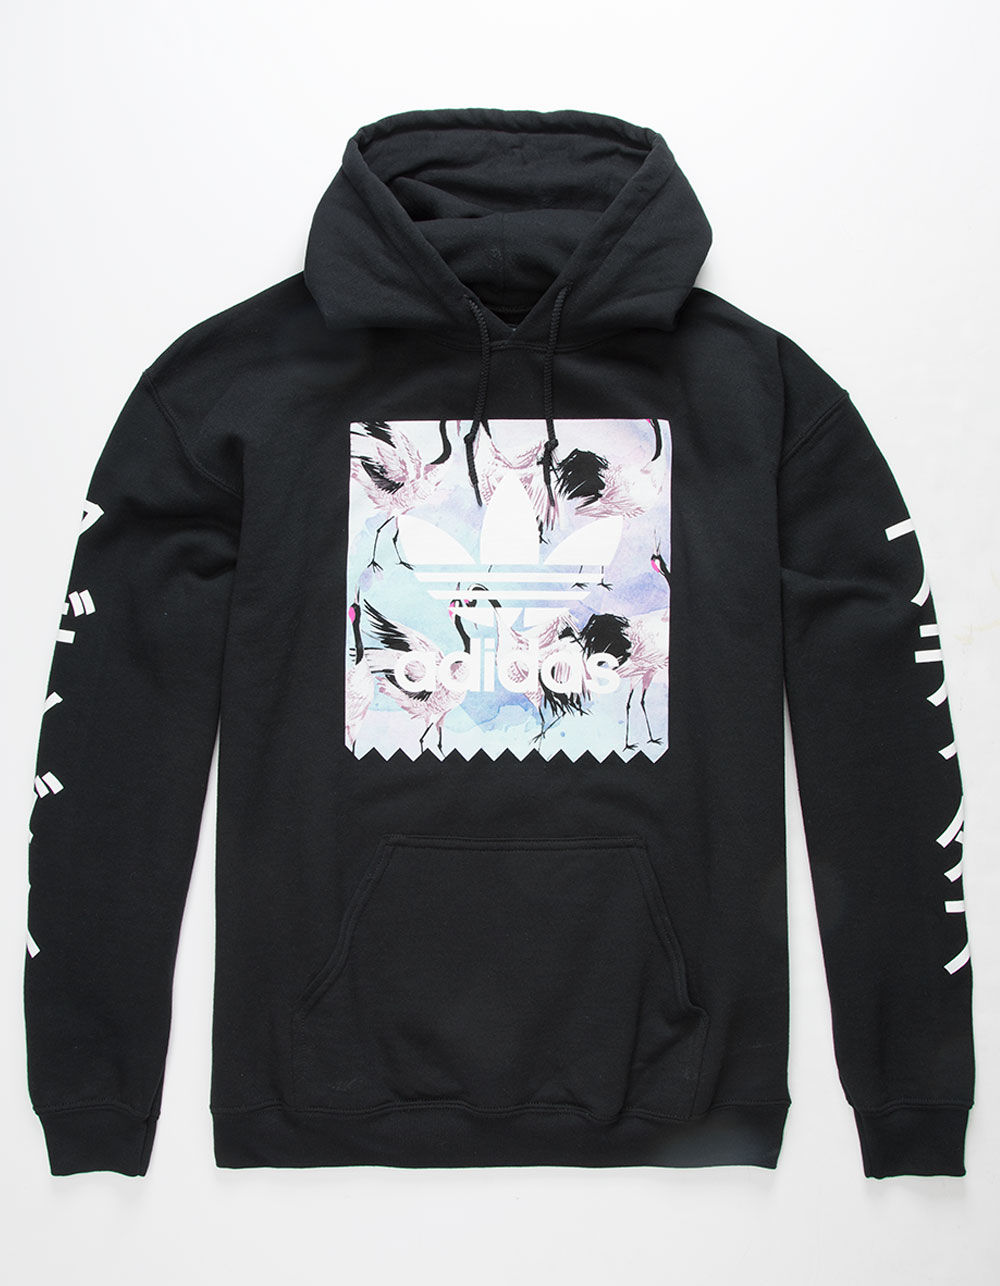 Hoodies for Men & Men's Sweatshirts | Tillys